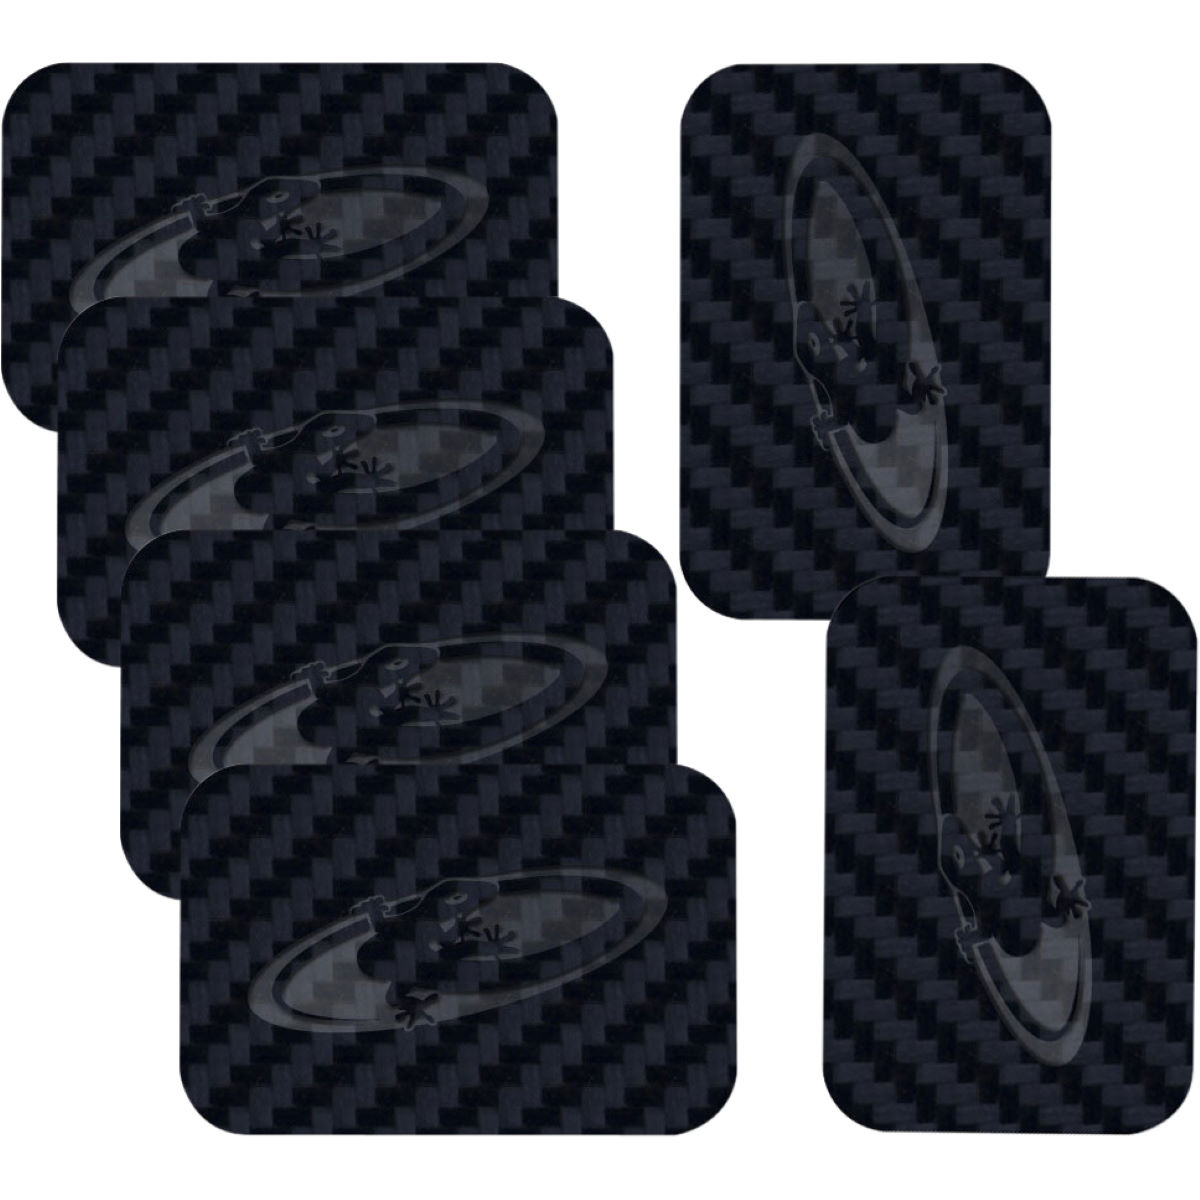 Lizard Skins Carbon Leather Patches